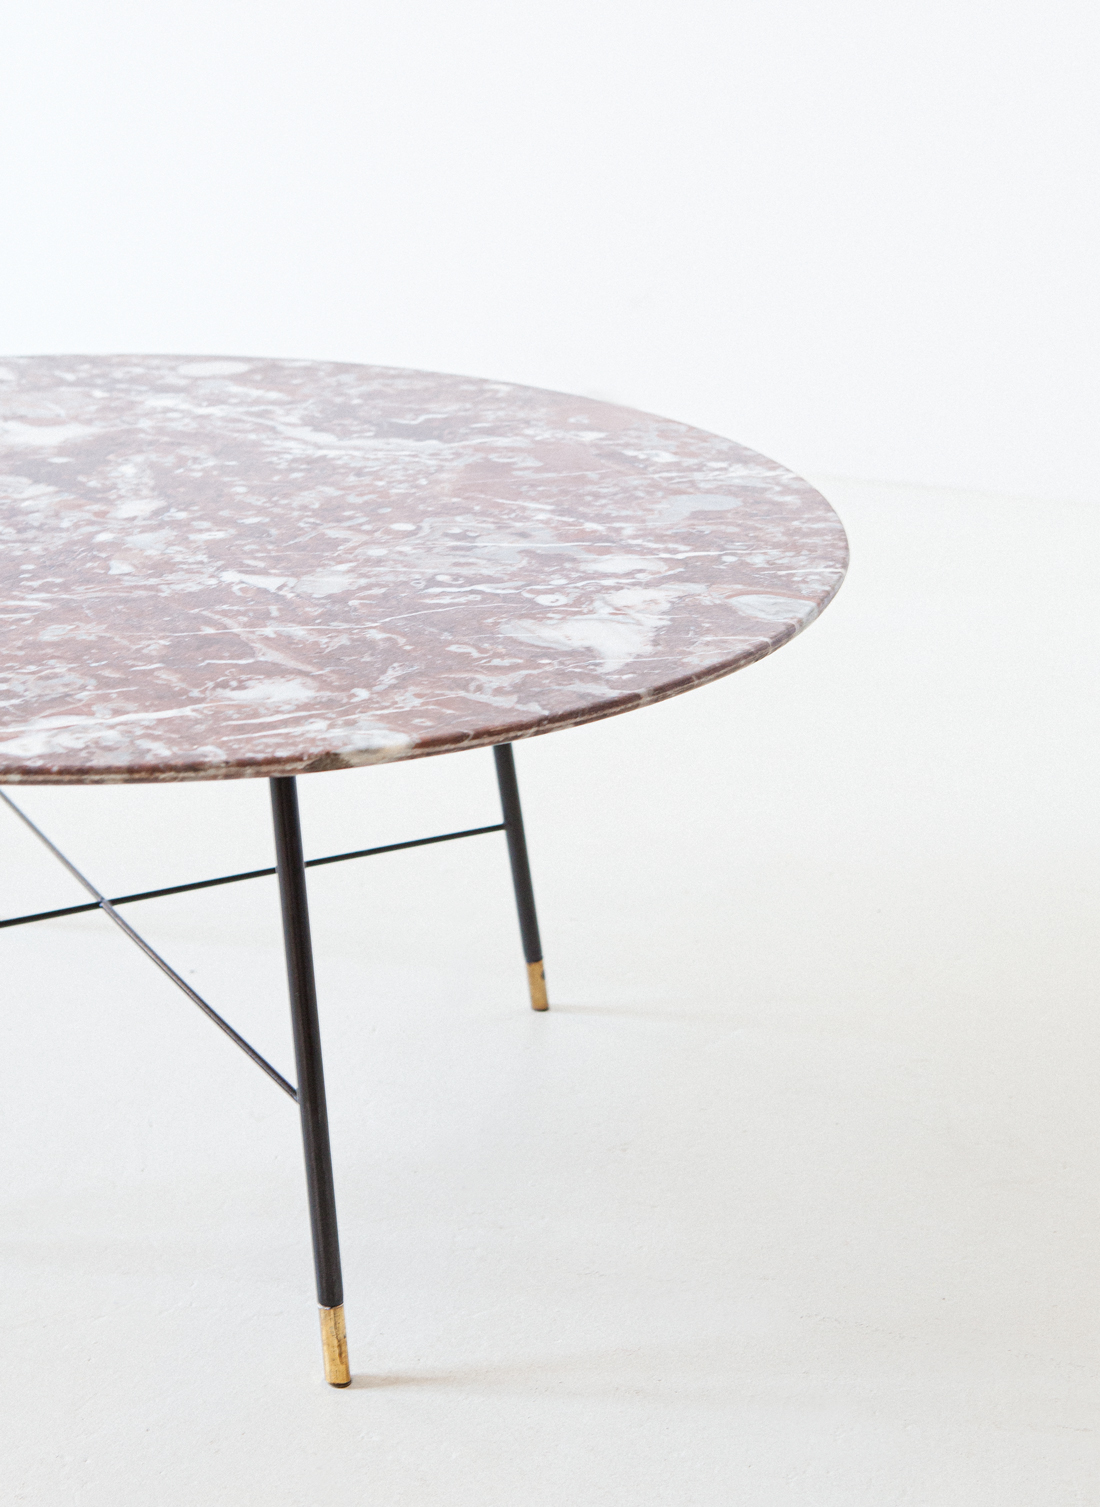 1950s-italian-marble-top-round-low-table-4-t85